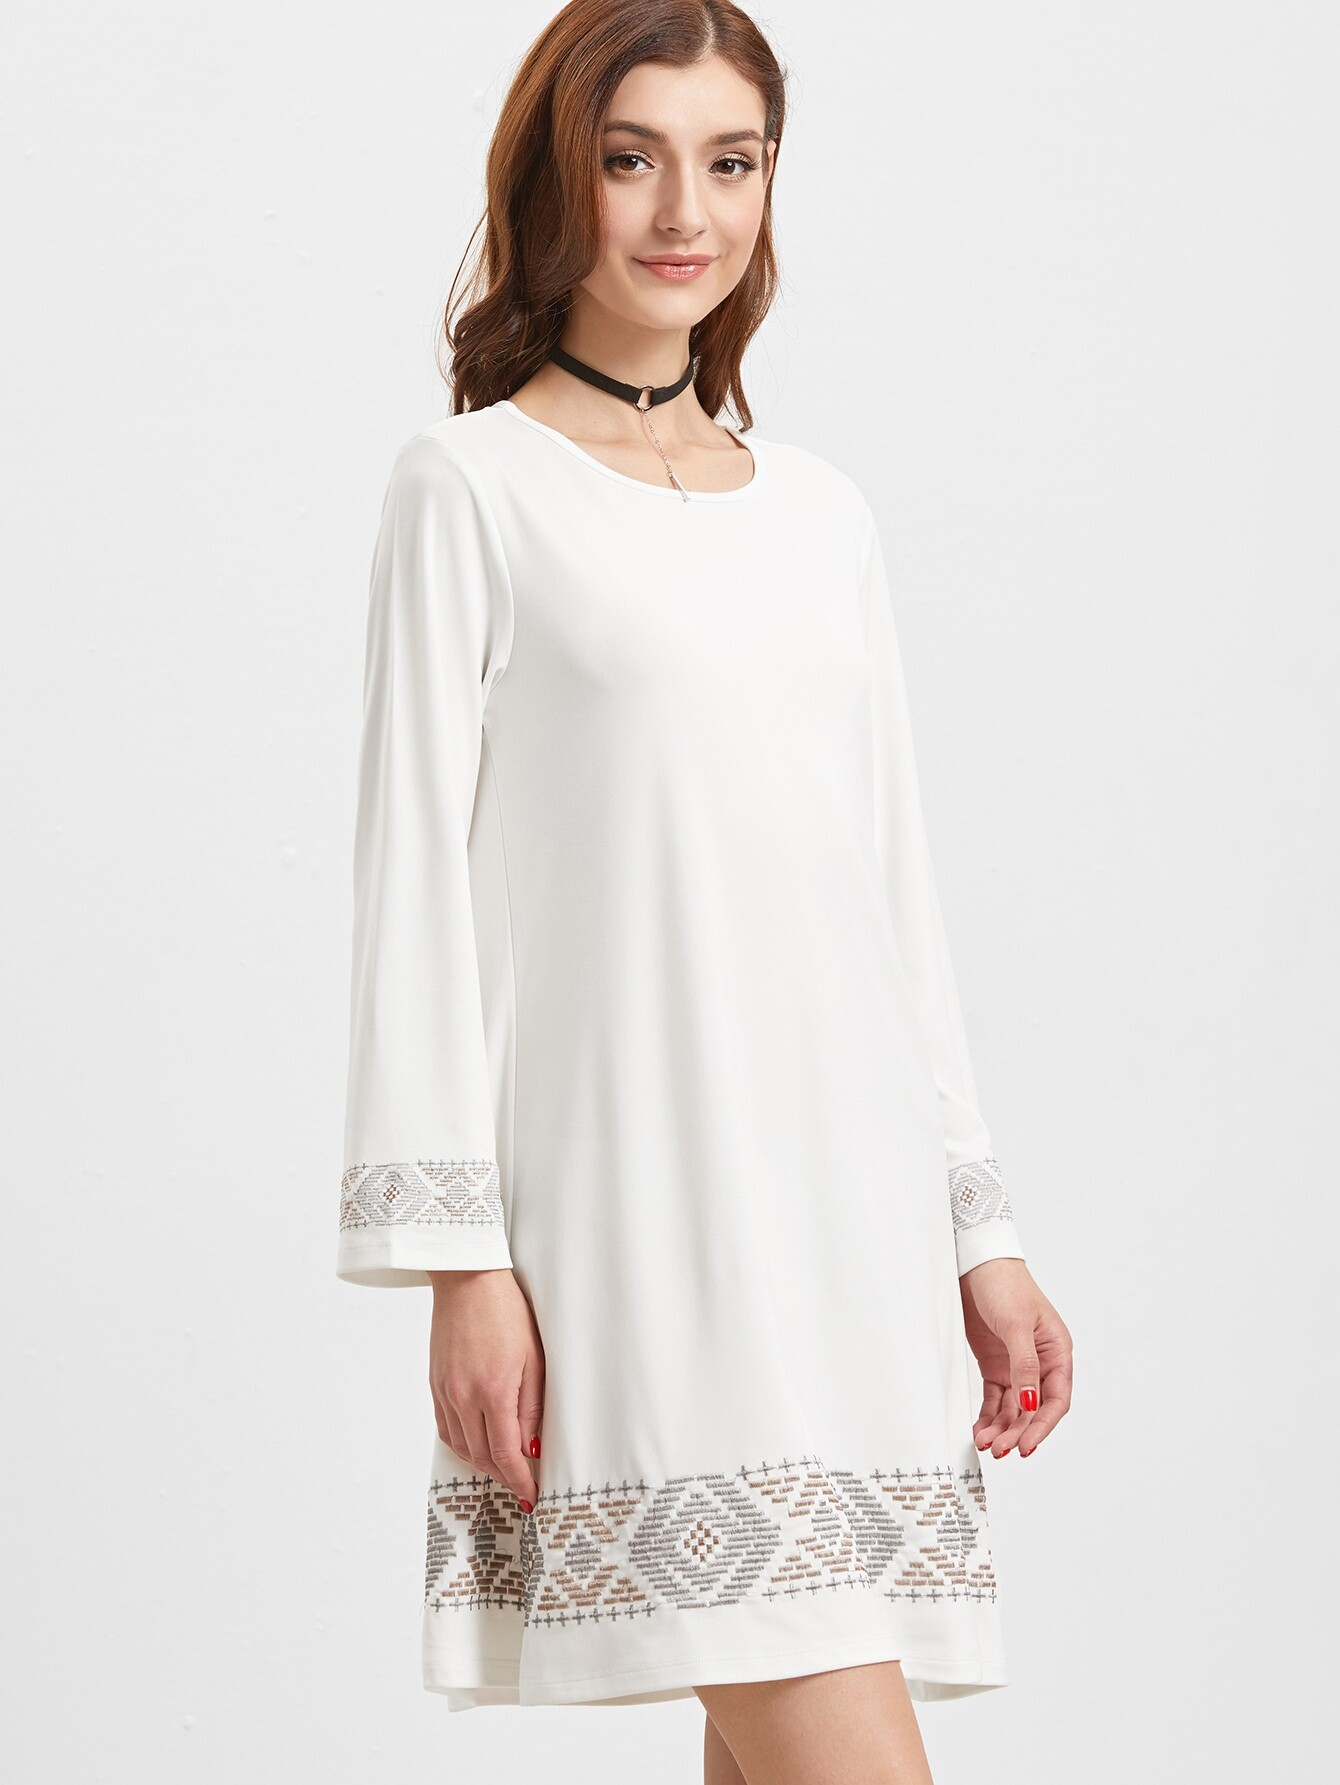 White Embroidered Detail Long Sleeve Tunic Dress -romwe fashions at planetgoldilocks